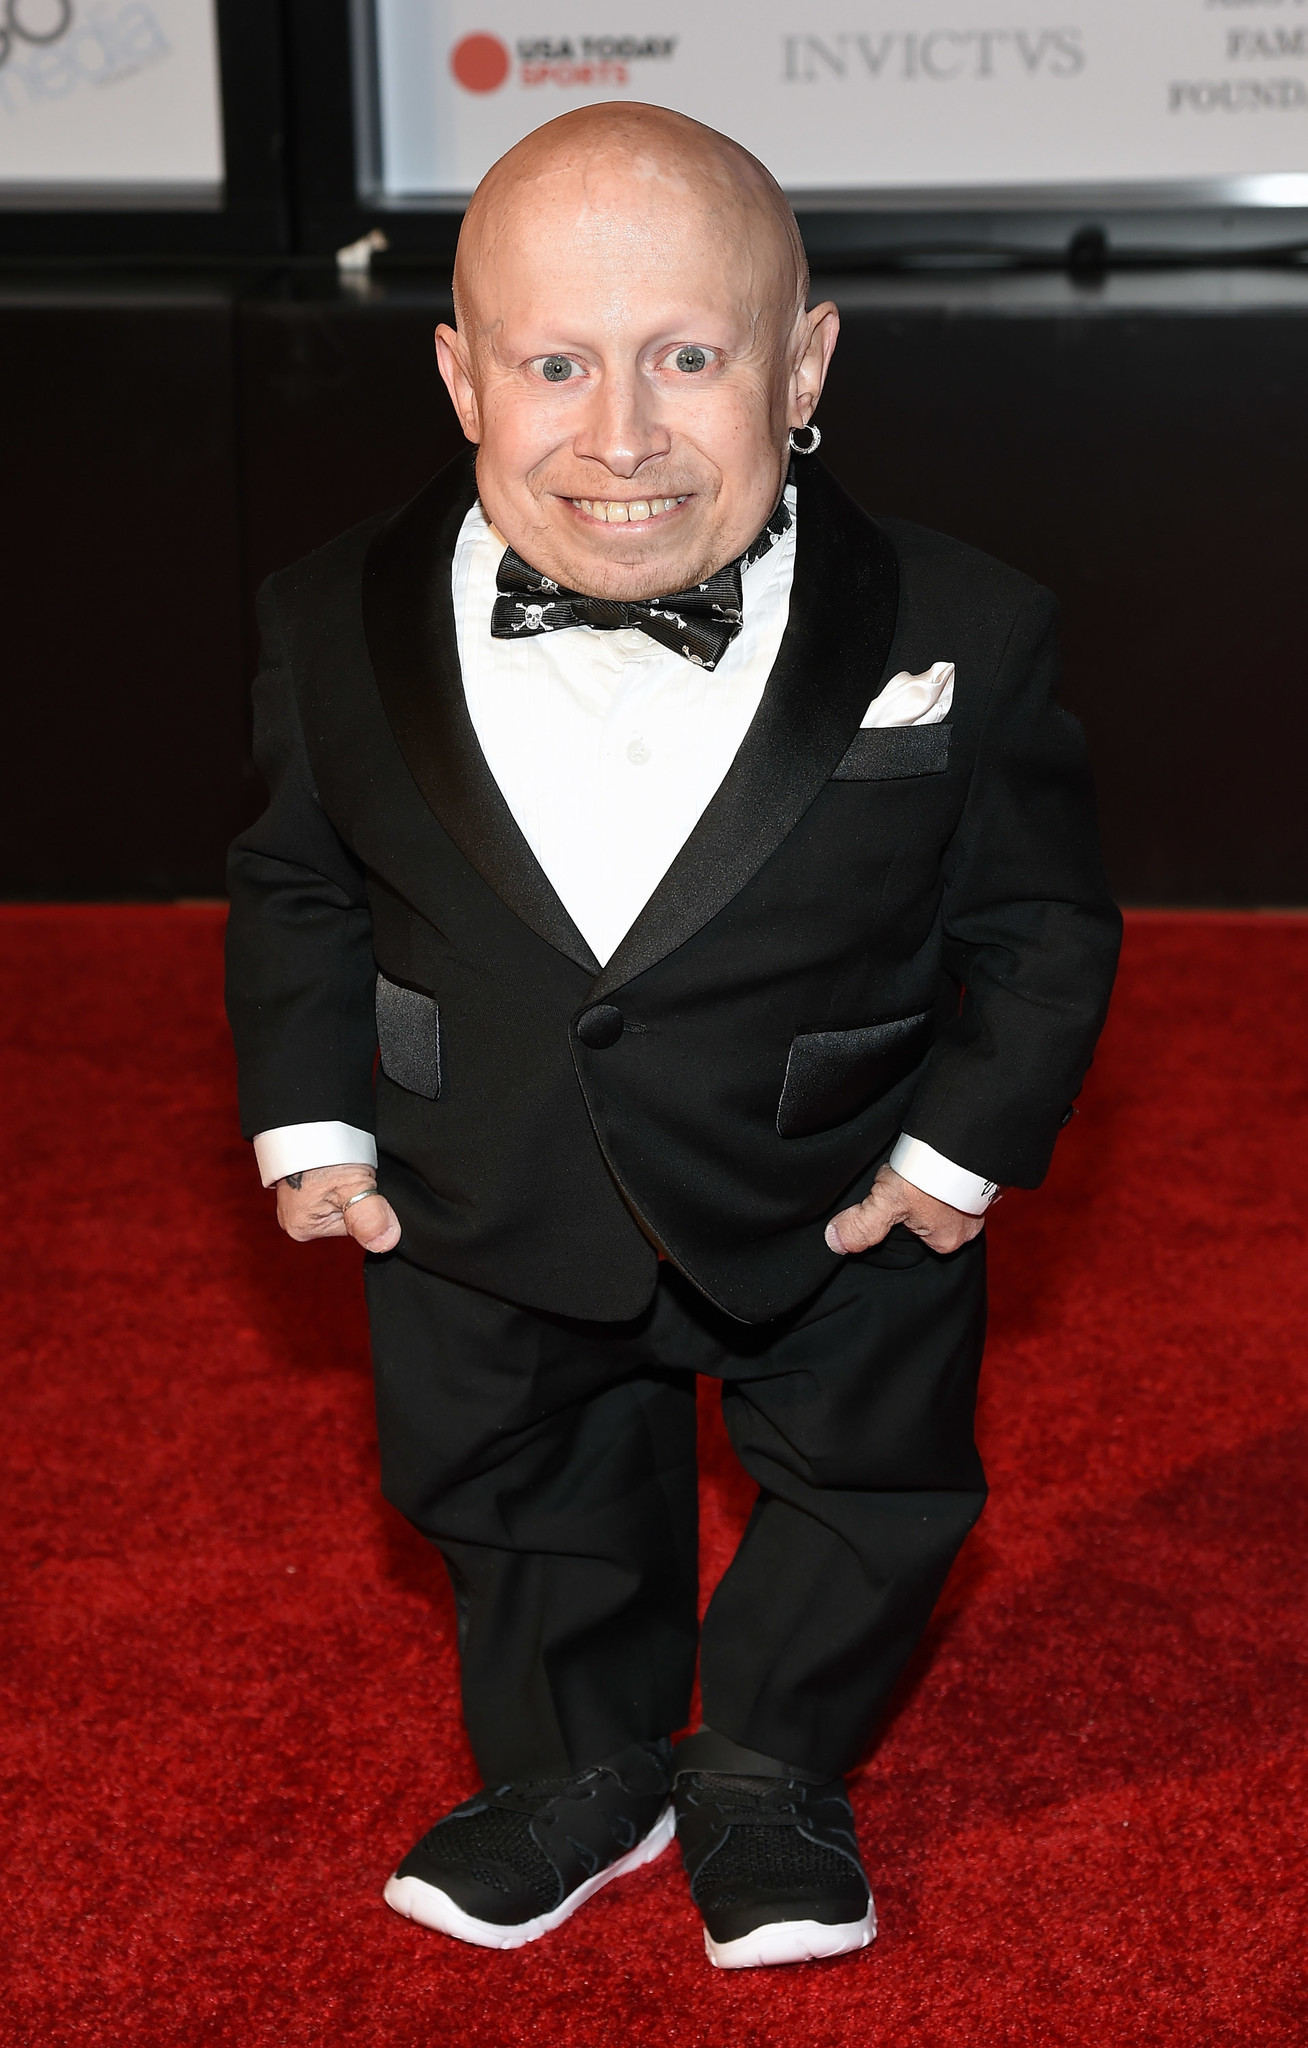 Coroner Verne Troyer Suicide By Alcohol Intoxication Chicago Tribune